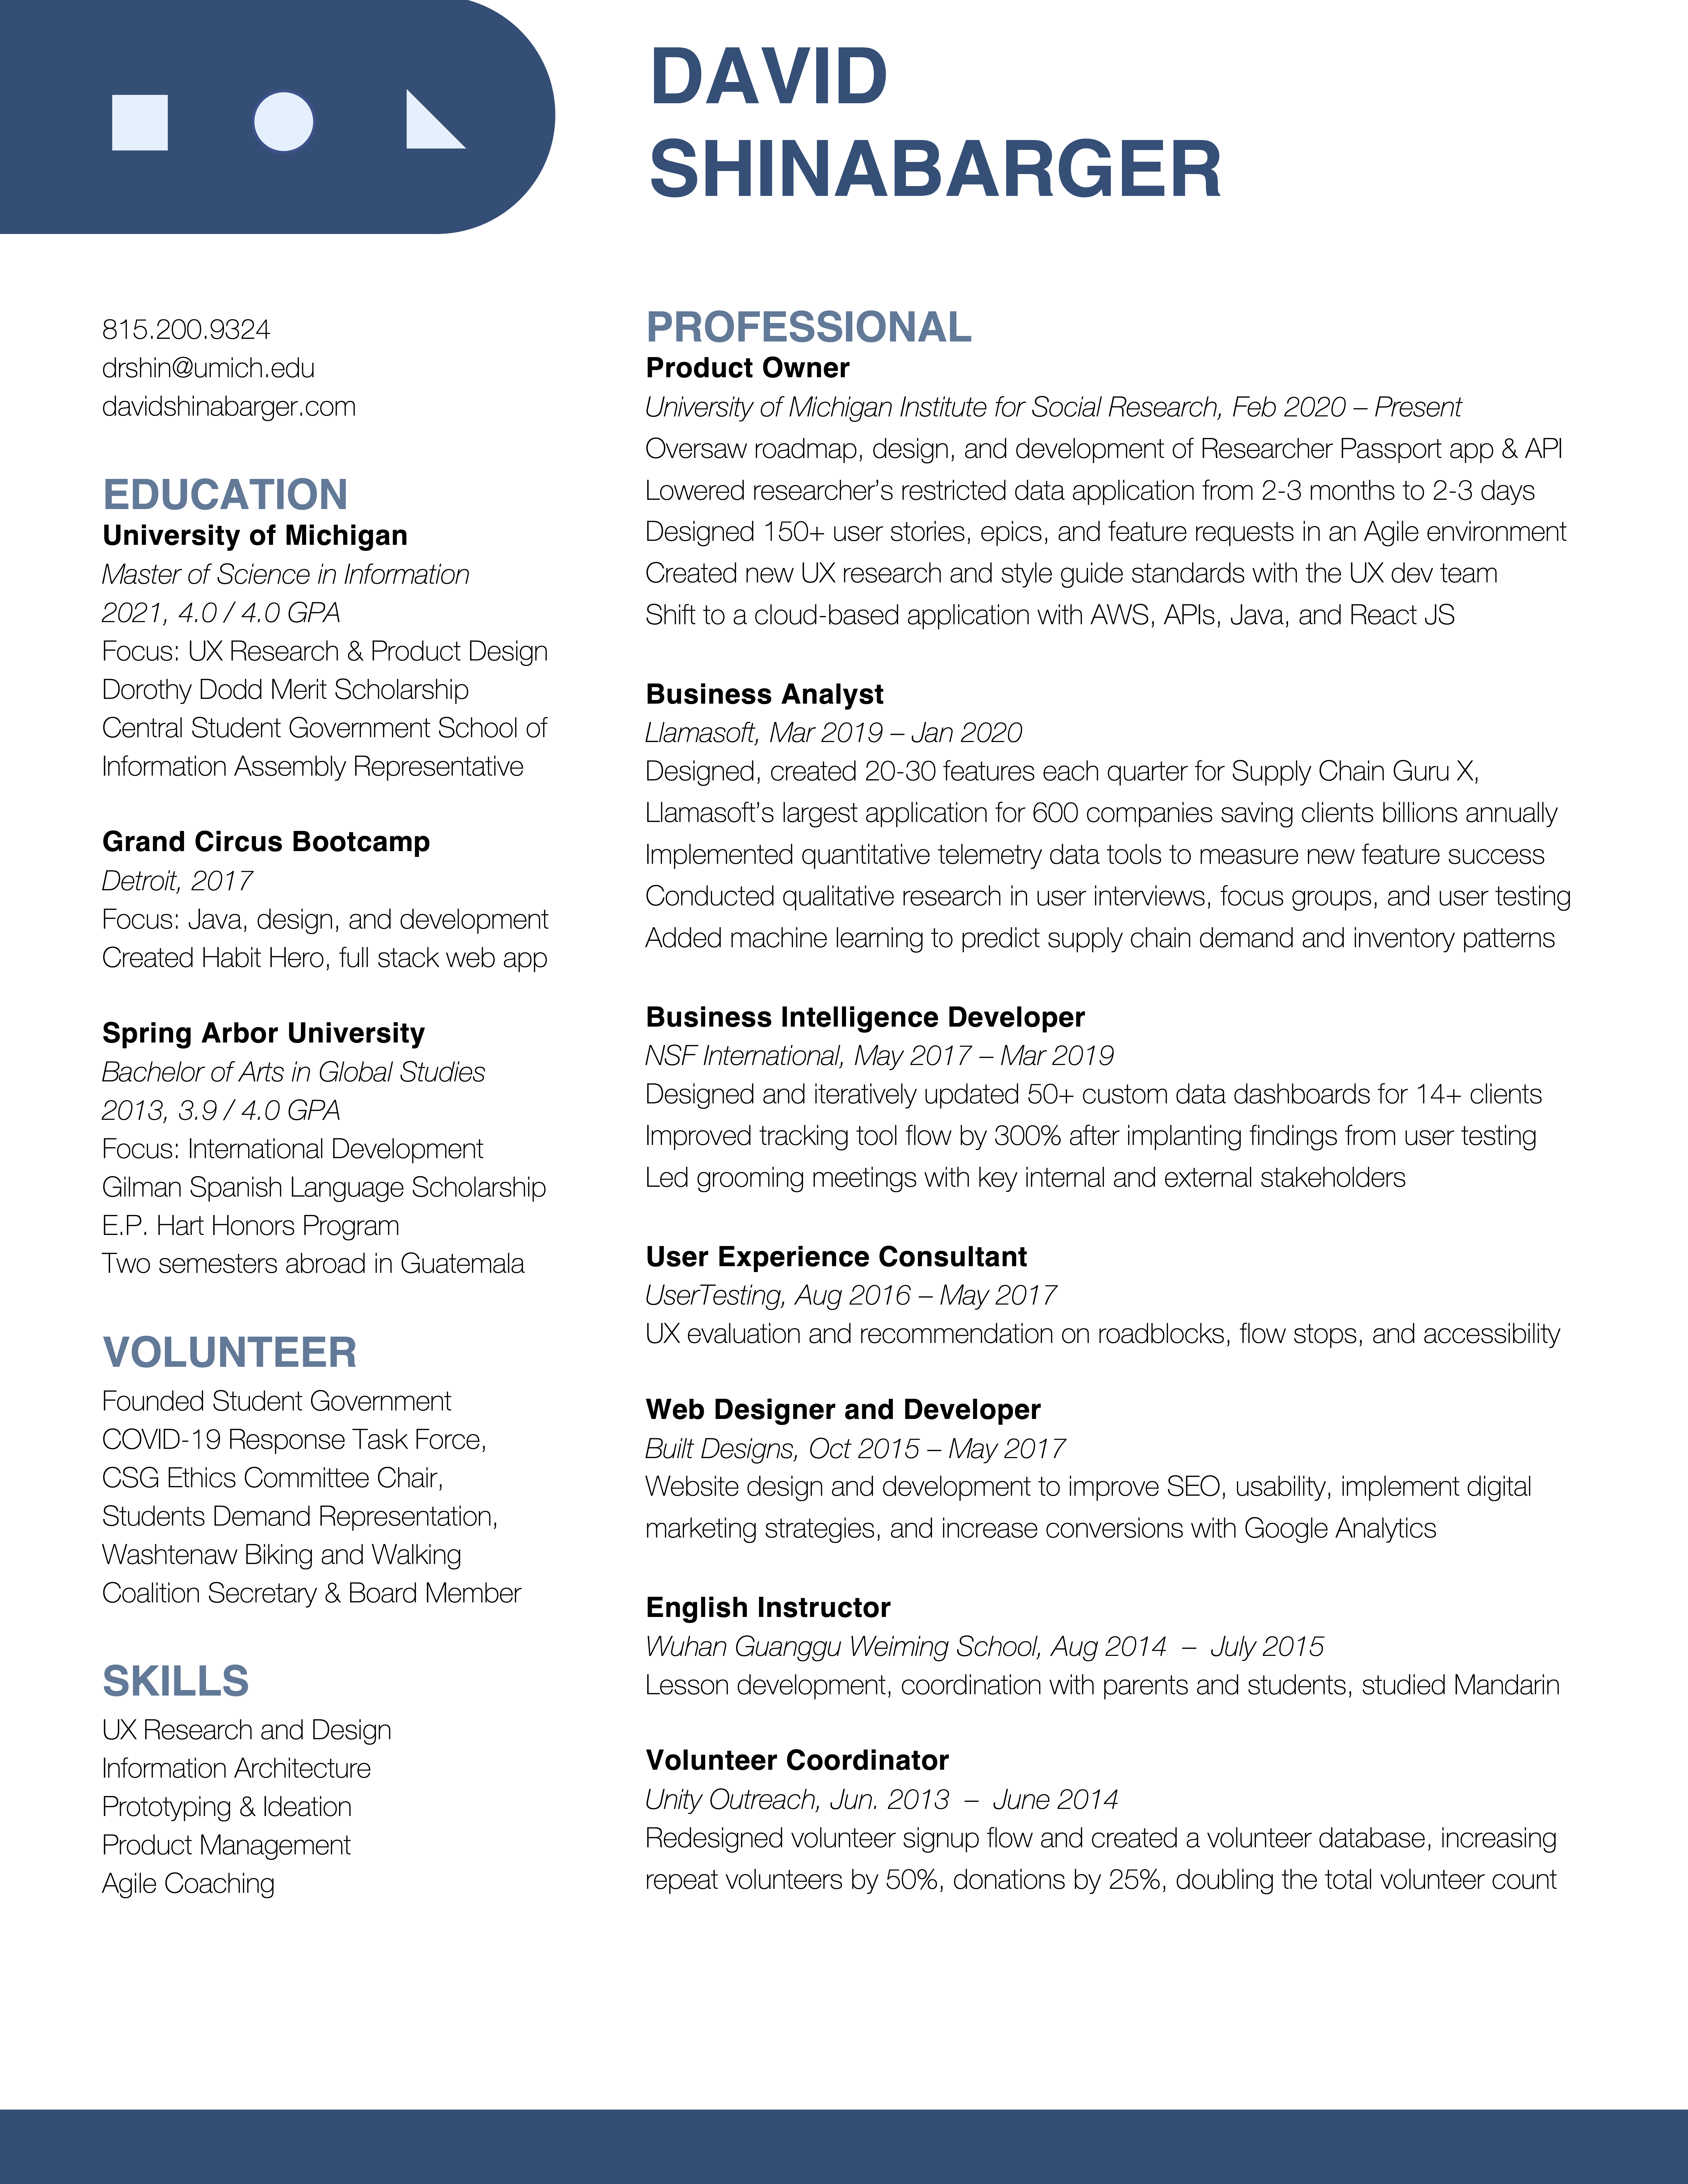 One page resume image